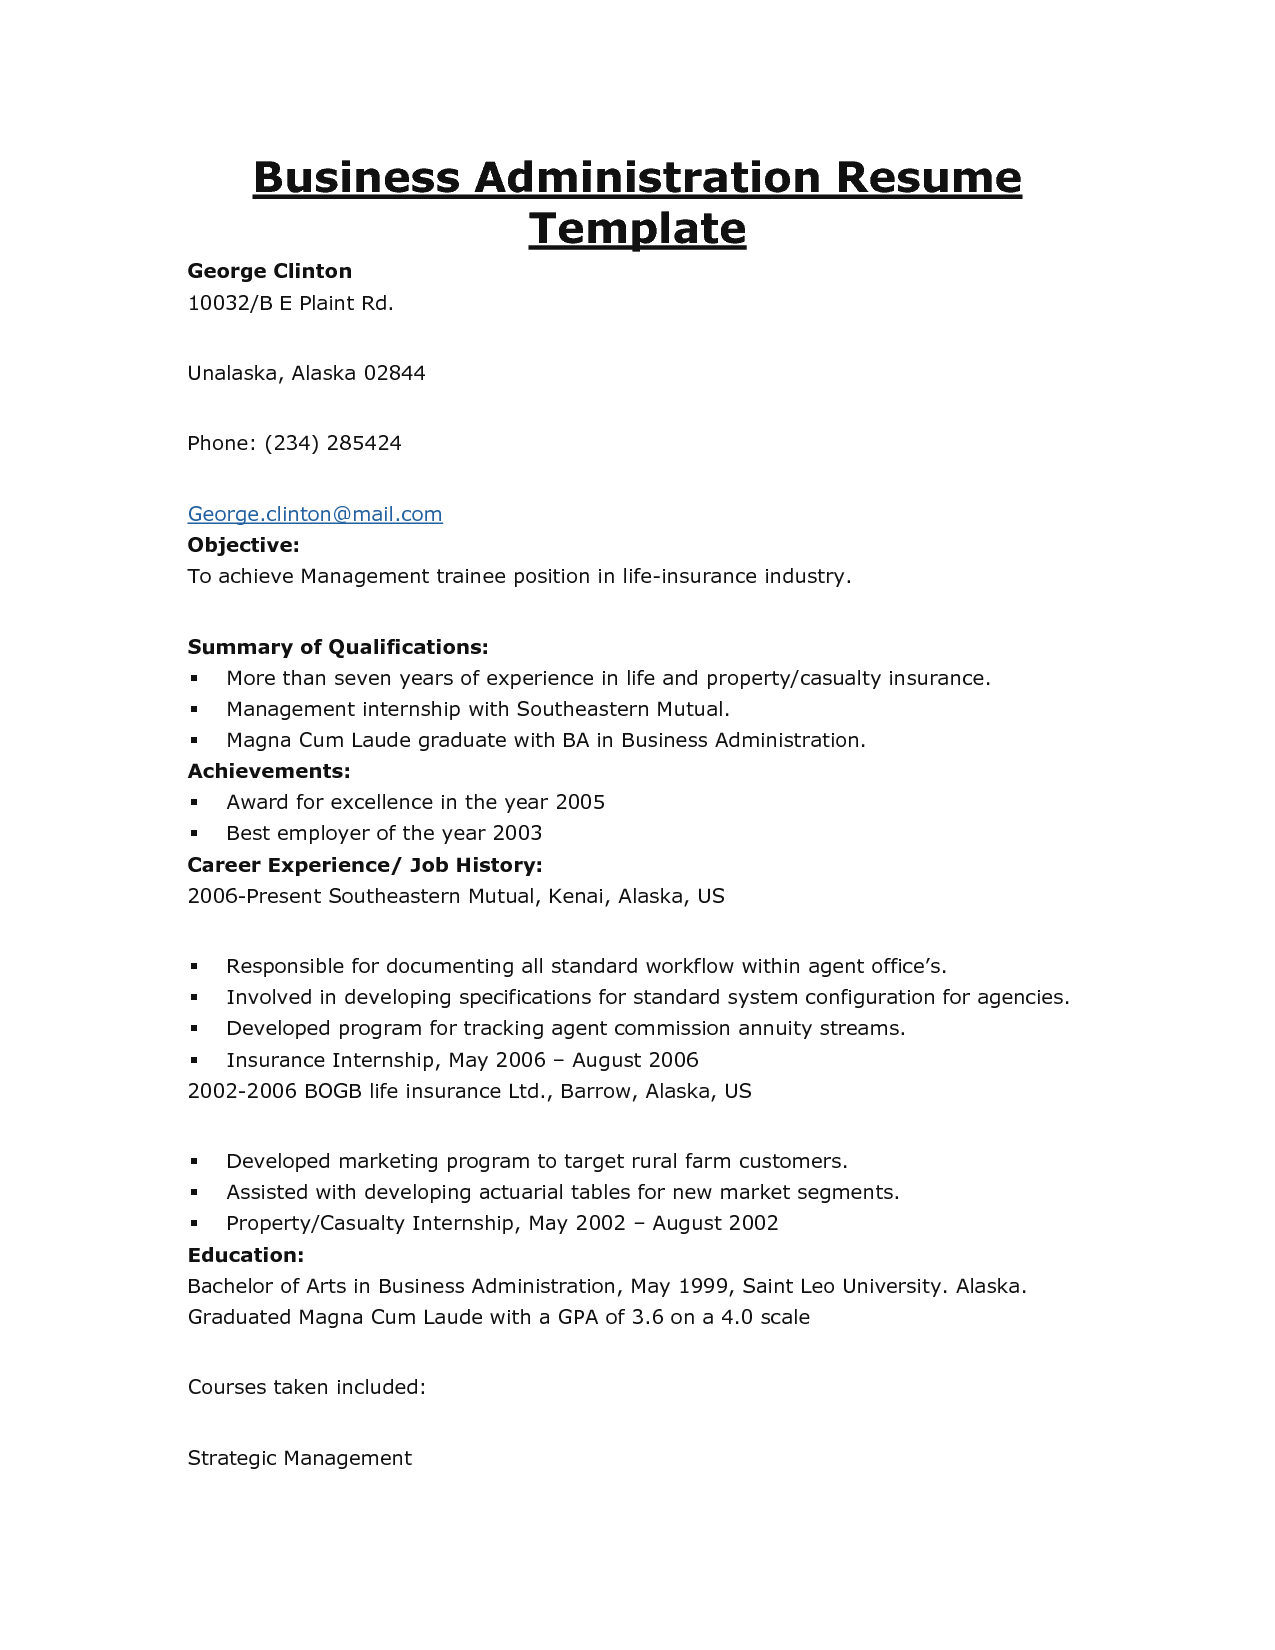 Business Management Resume Samples Endearing Resume Examples Business Management #business #examples #management .